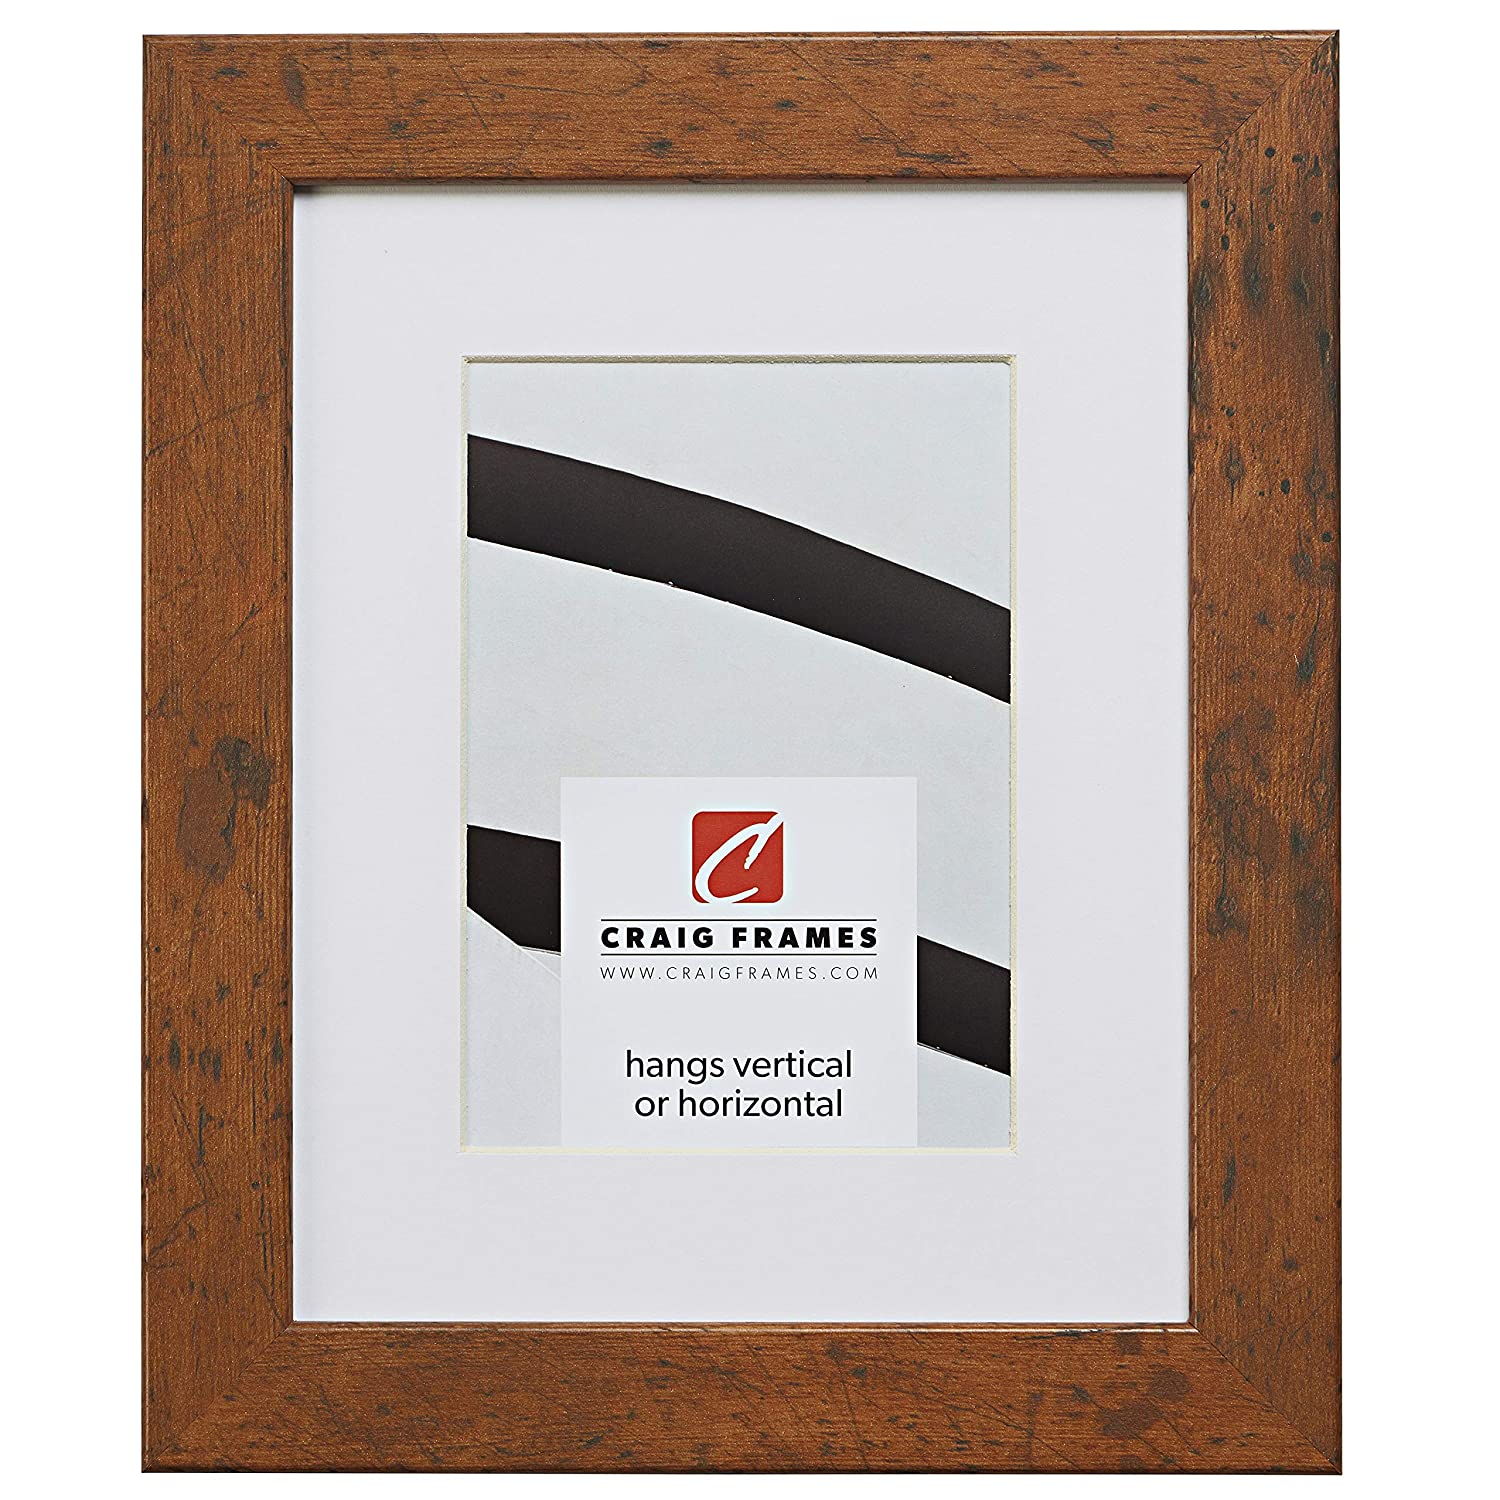 Craig Frames 26011 22 x 28 Inch Light Walnut Brown Picture Frame Matted to Display an 18 x 24 Inch Photo